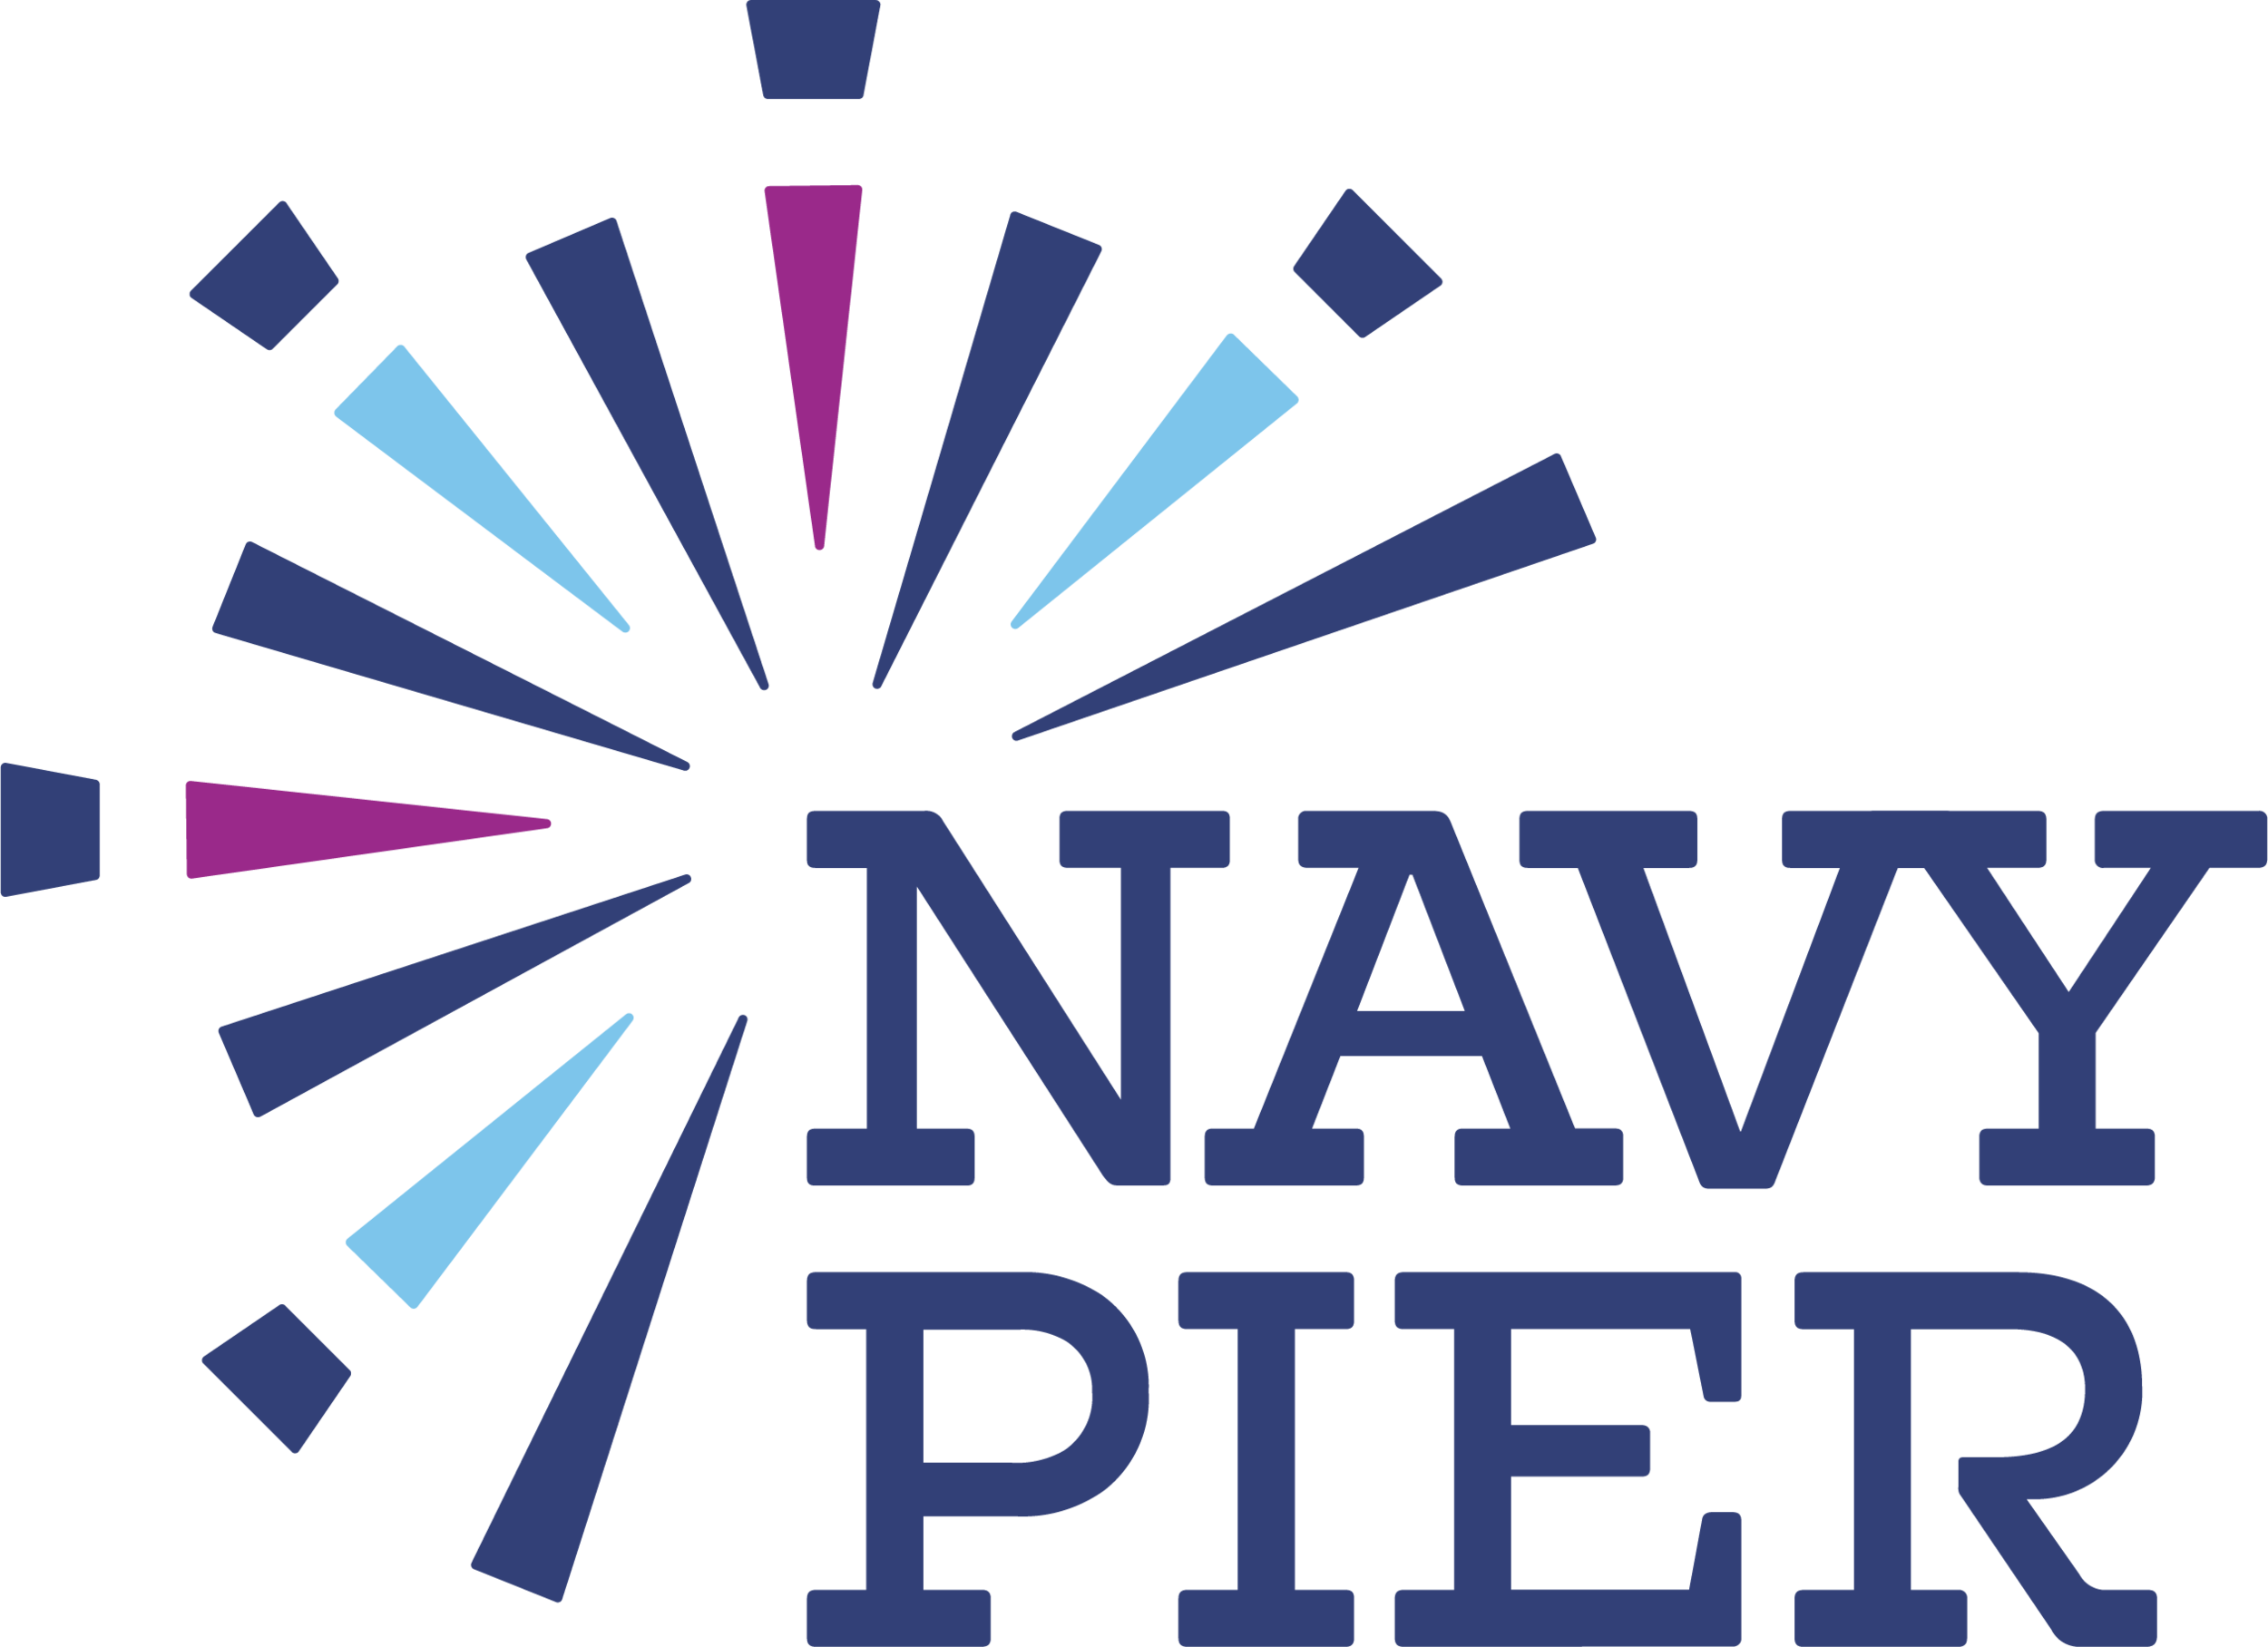 NvyPier_NEW_Logo.png